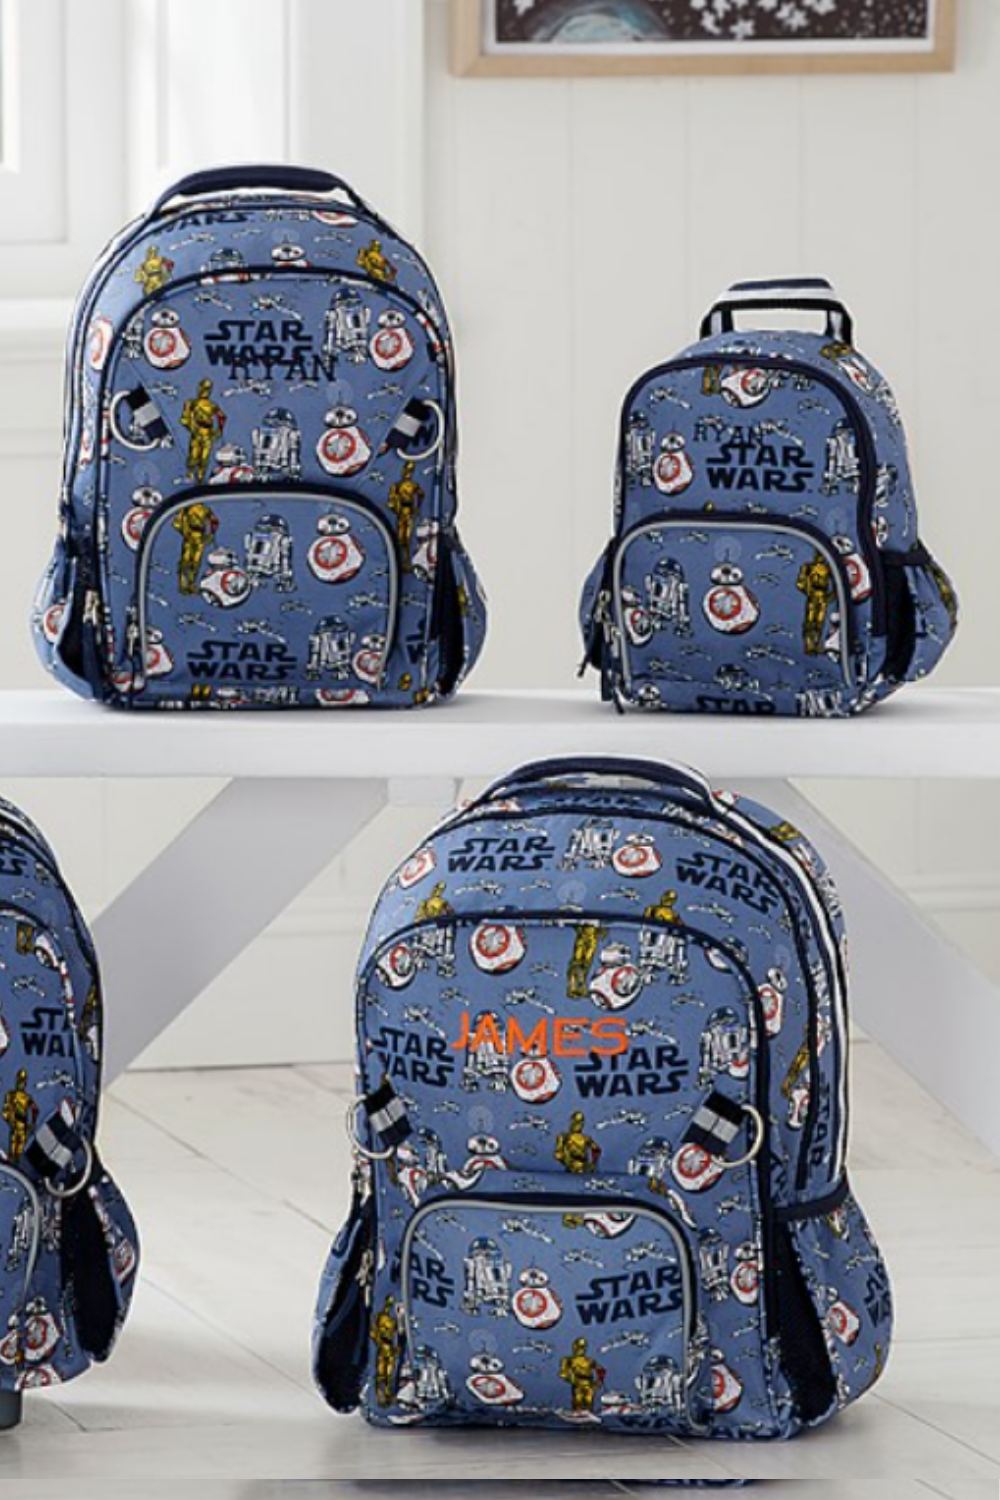 Pottery Barn Kids Clearance Backpacks Extra 30% off